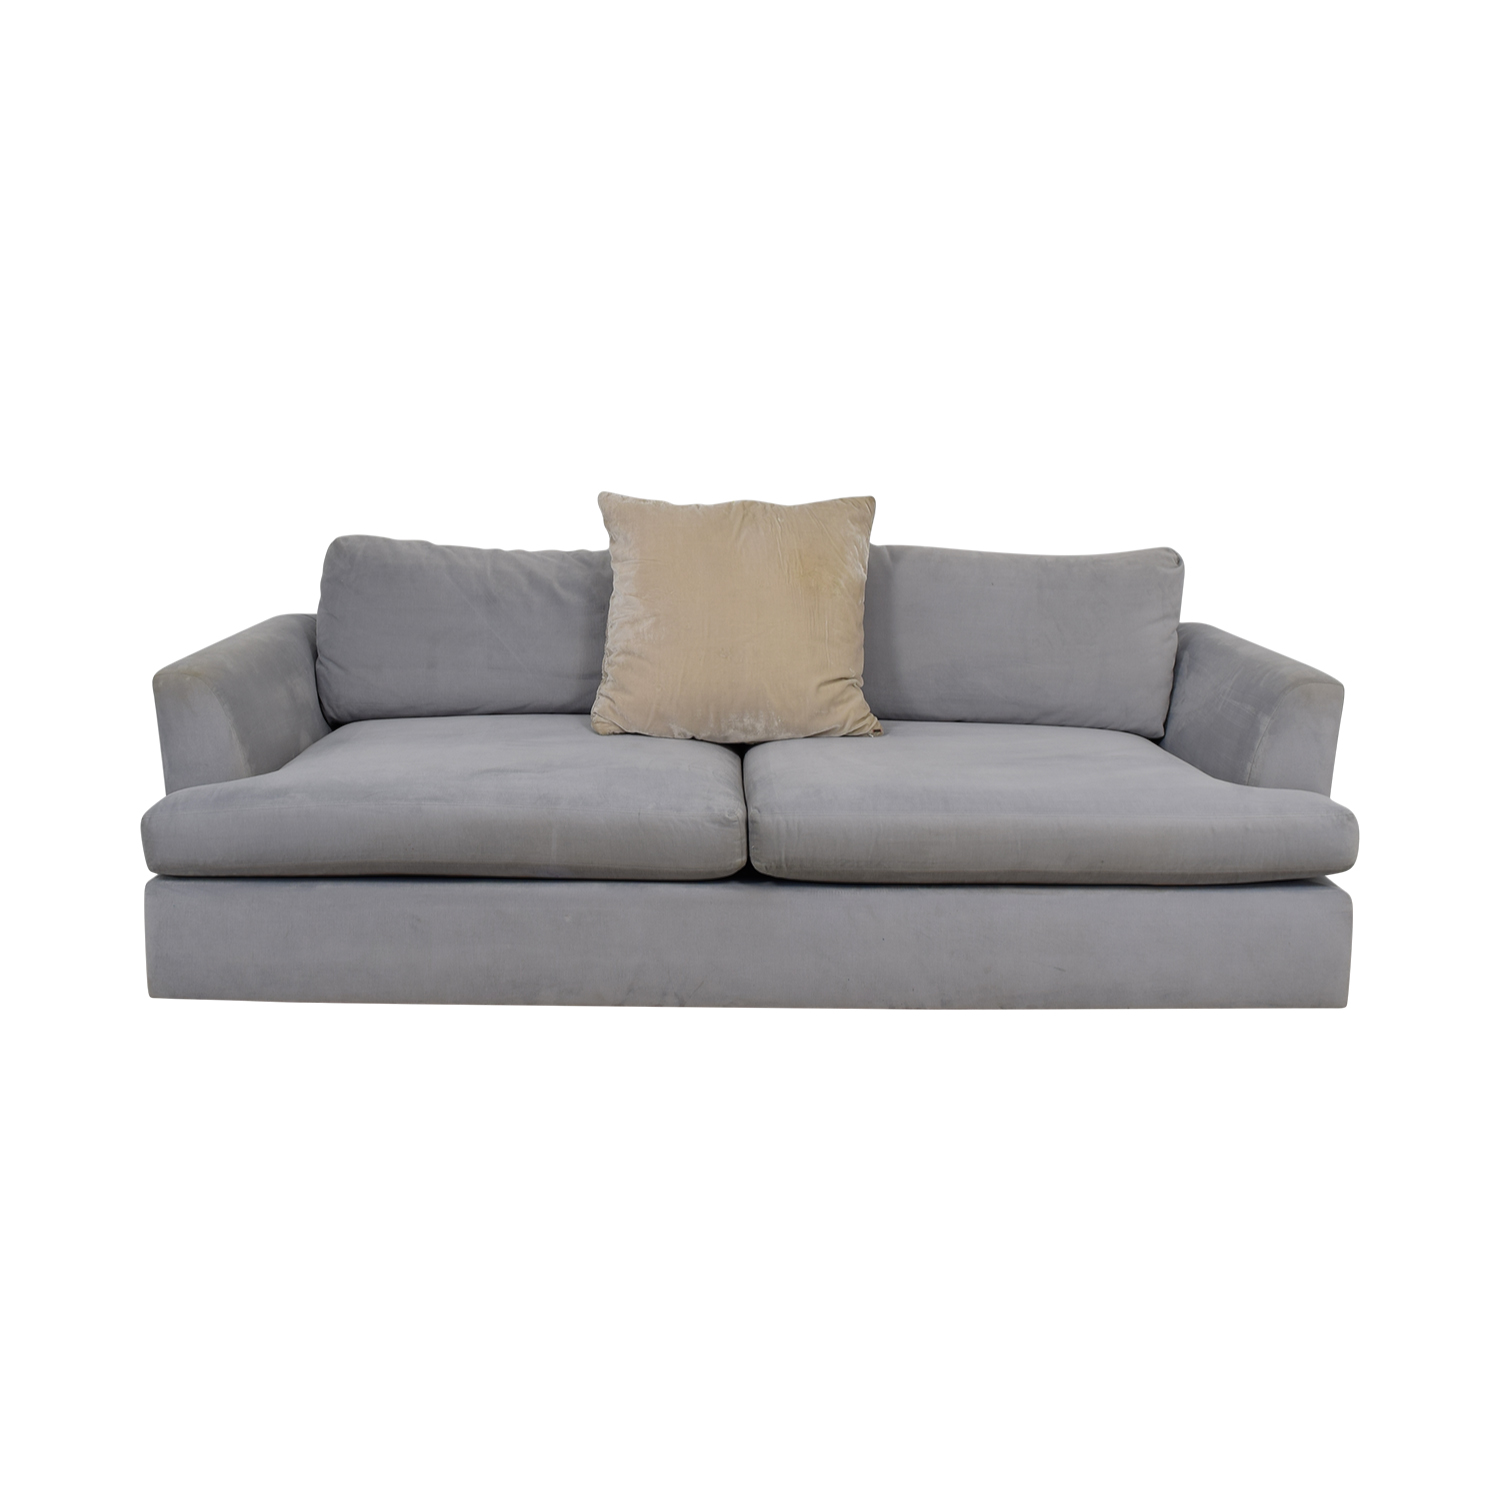 ABC Carpet & Home ABC Carpet & Home Cobble Hill Light Blue Two-Cushion Sofa Sofas